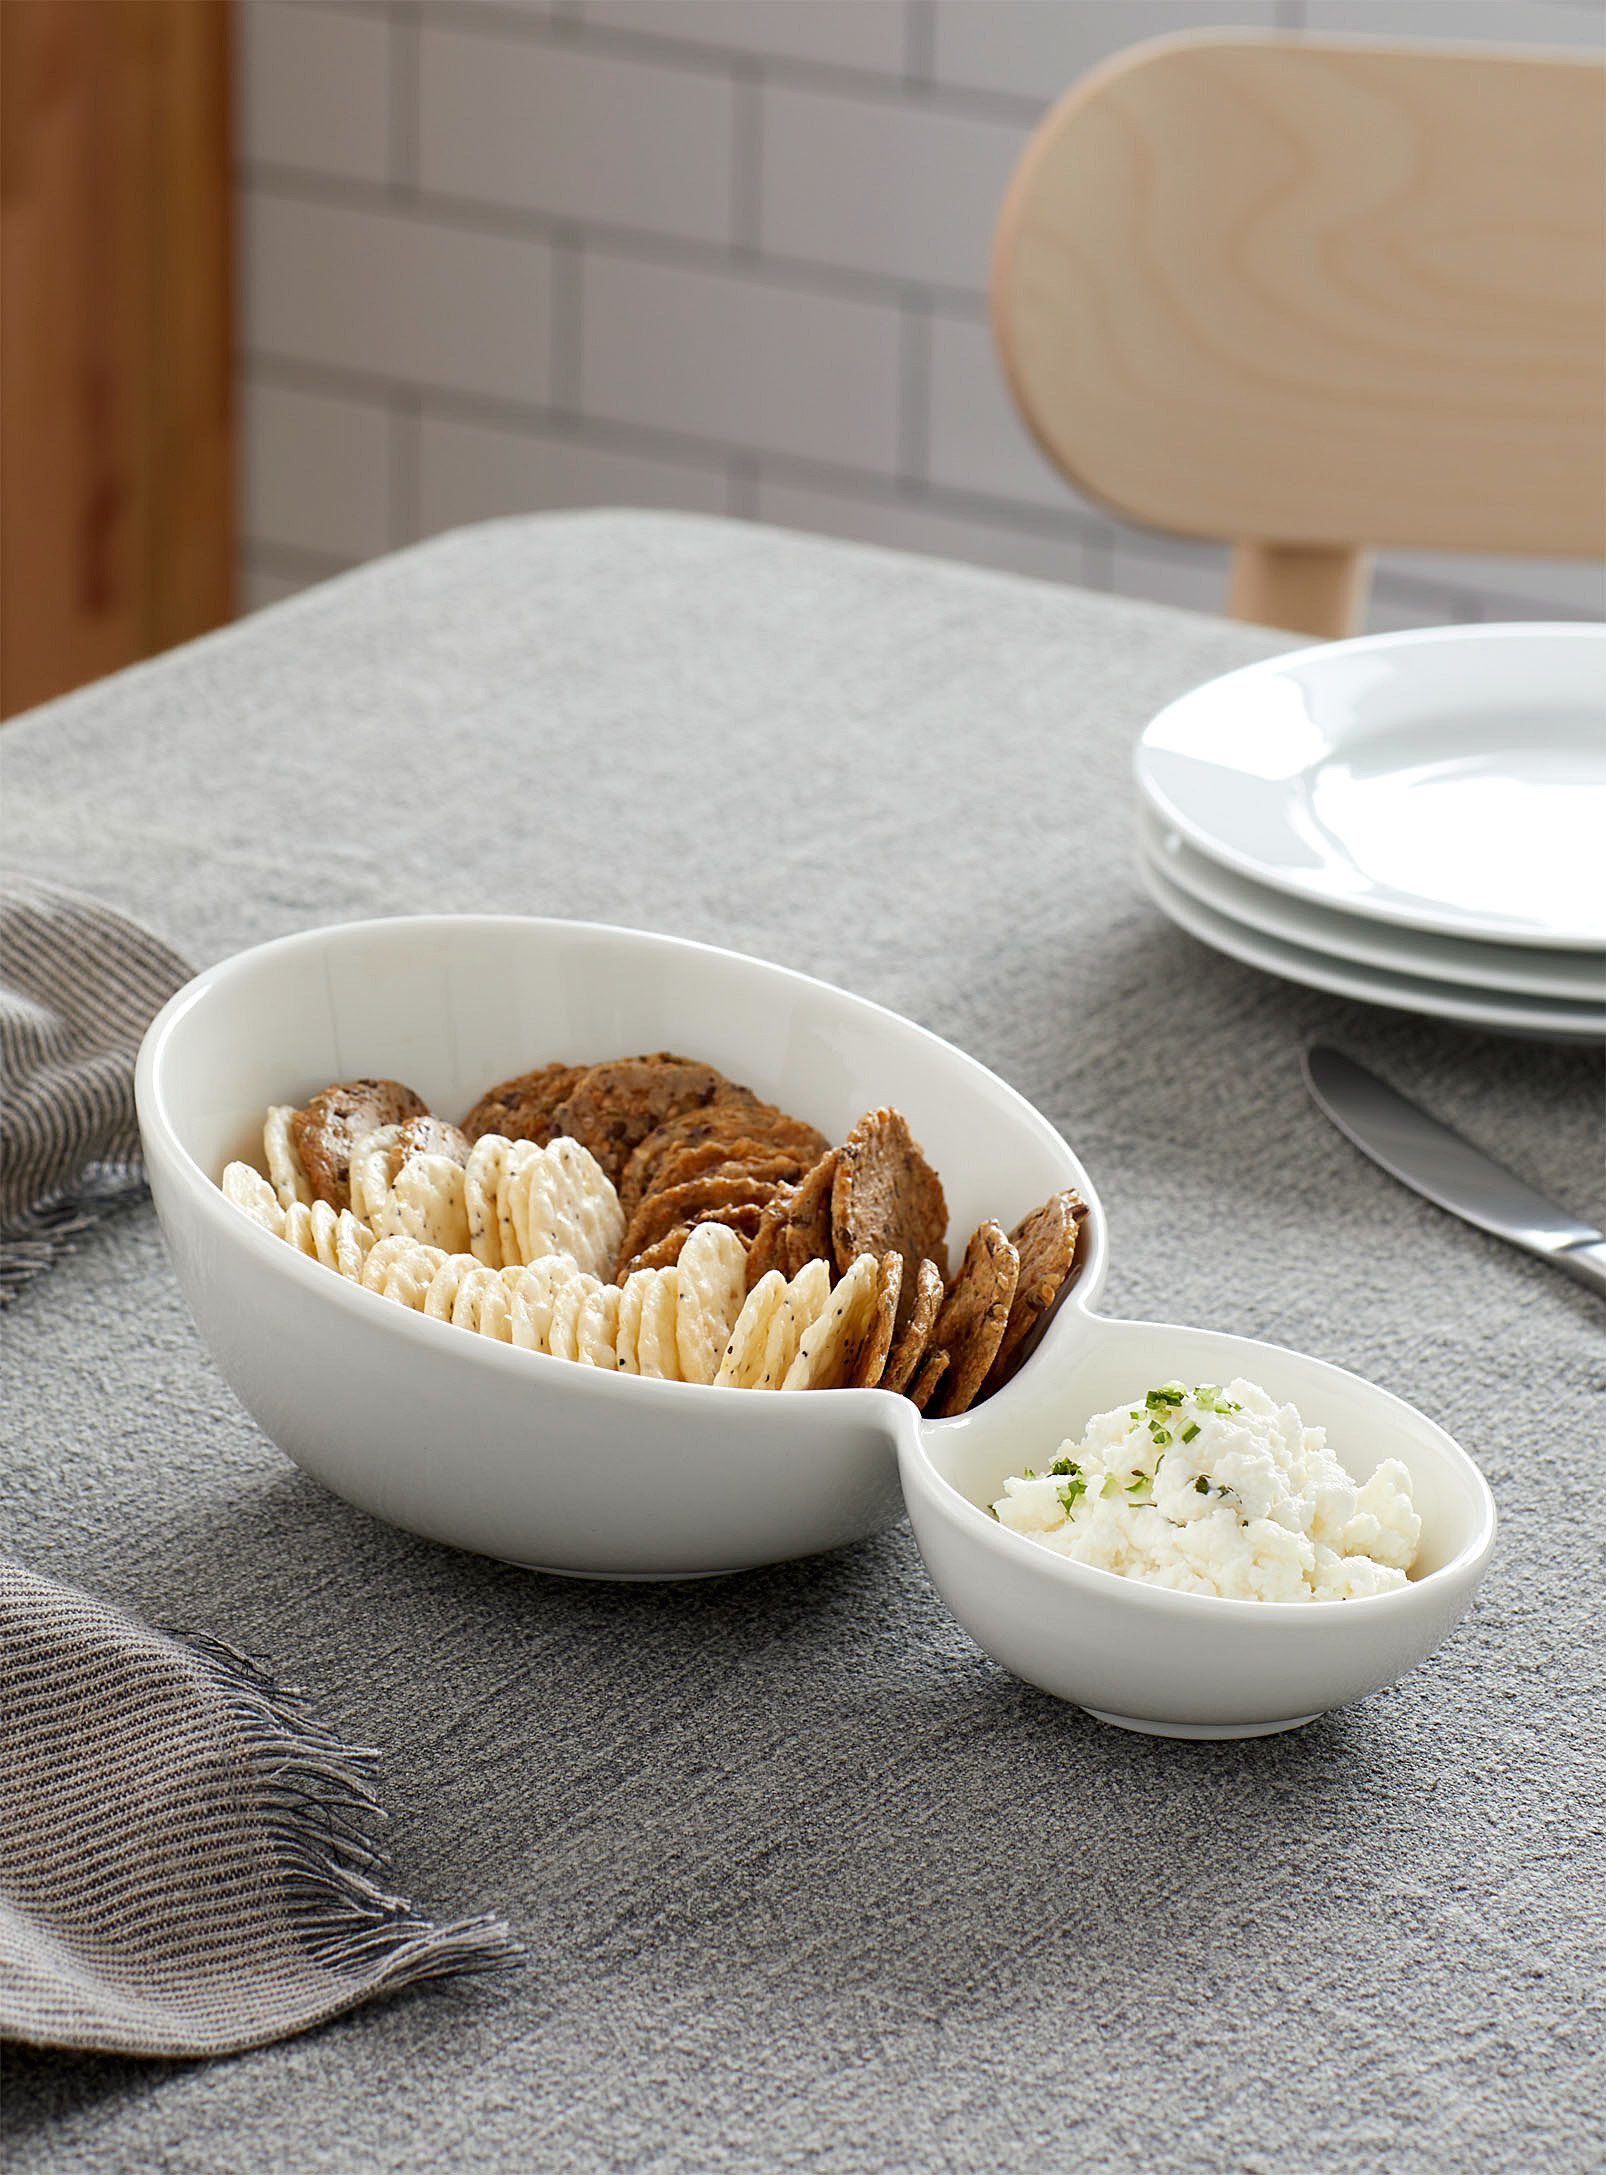 A ceramic double-bowl dish with crackers and dip in it